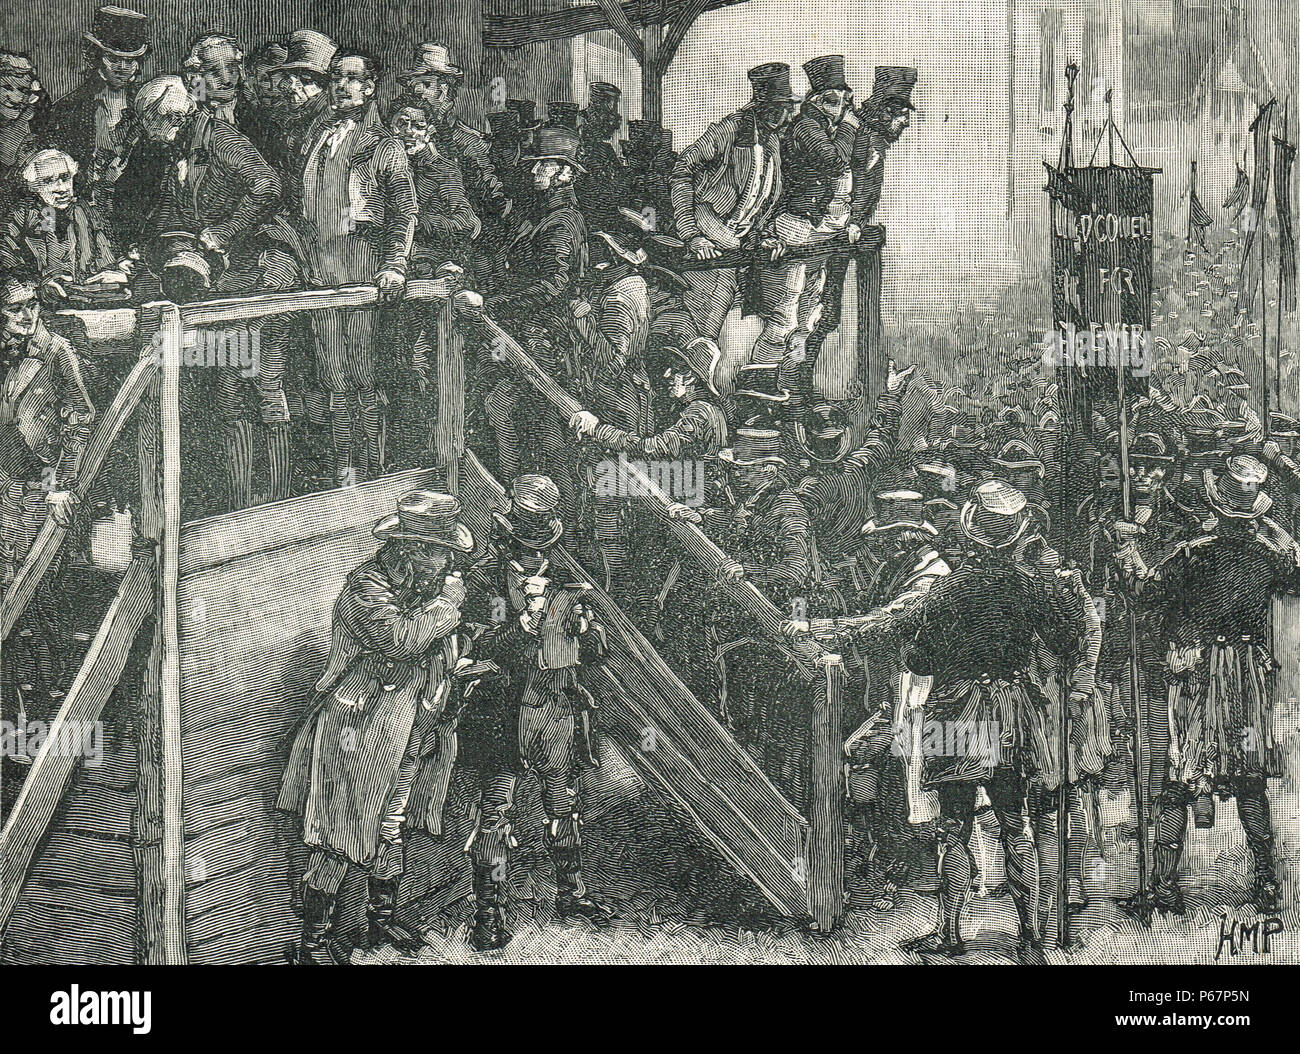 The Clare by-election of 1828, Father John Murphy of Corofin leading his tenants to the poll, Ennis, Ireland, voting for Daniel O'Connell 'to a man' - Stock Image